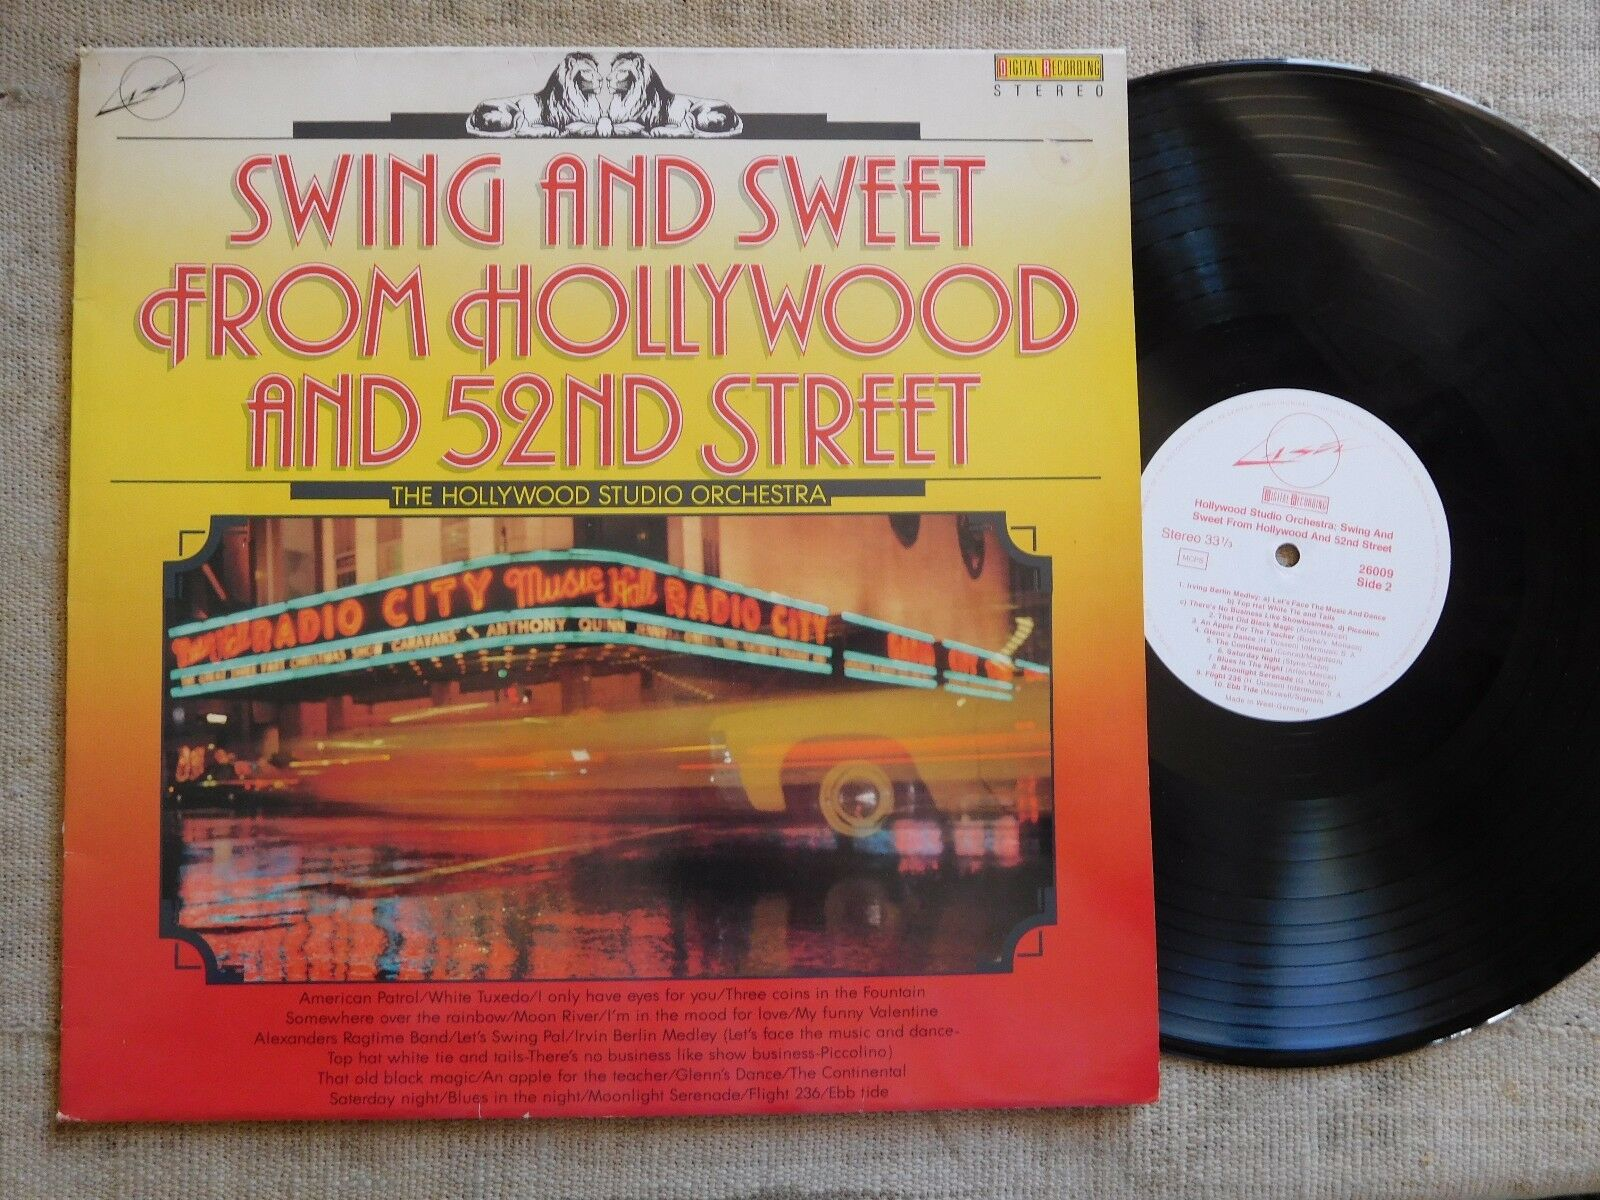 Hollywood Studio Orchestra – Swing And Sweet From Hollywood And 52nd S - LP